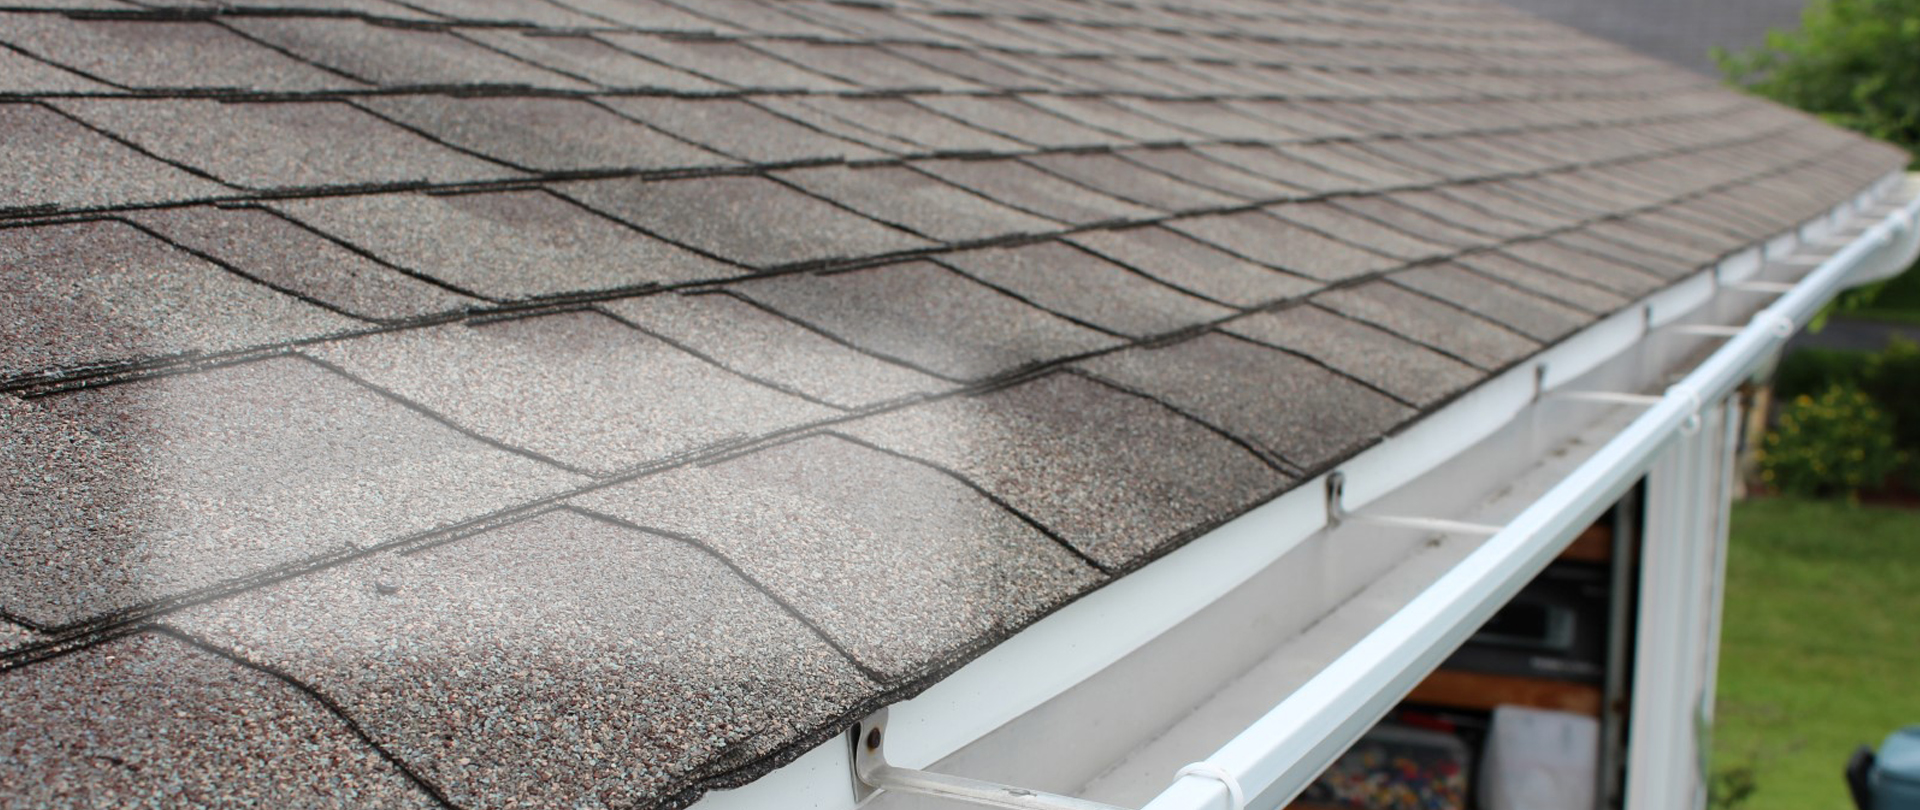 Restored Roofs & Gutters